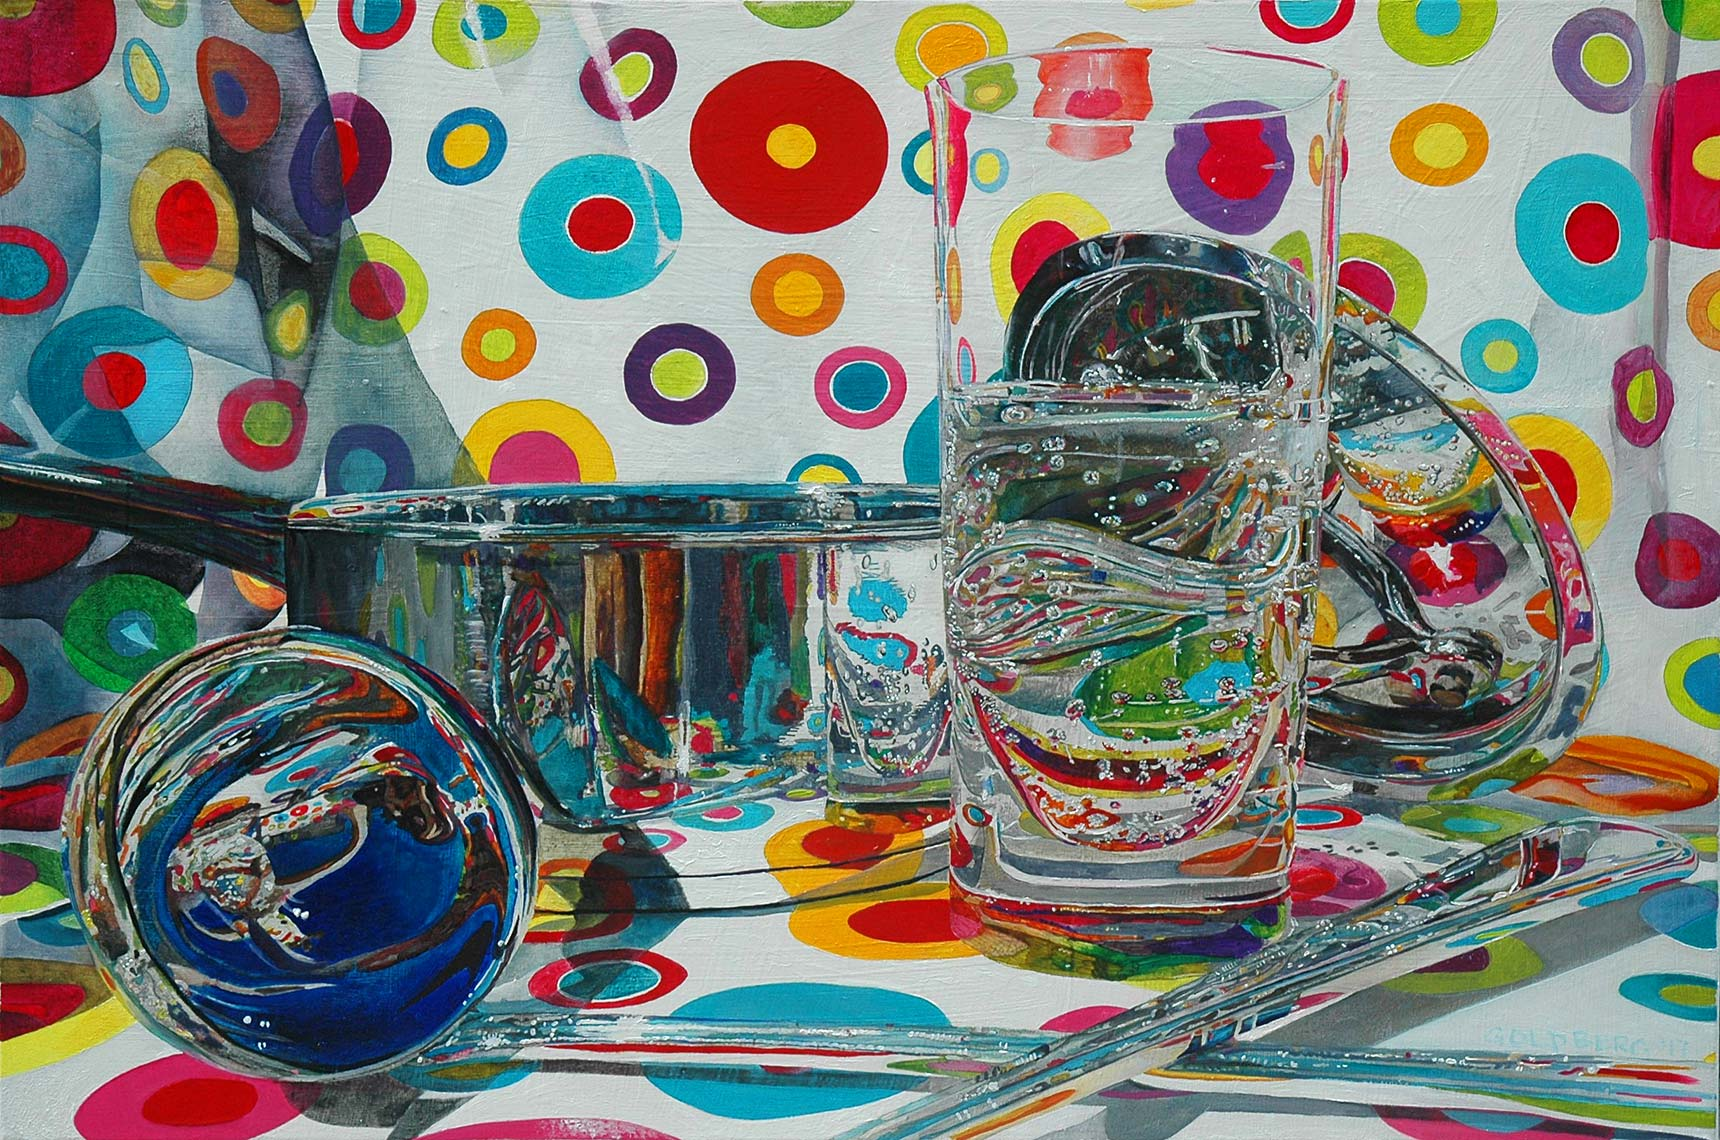 Kitchen-Utensils-Poolside-24x36-Oil-on-Canvas-2017